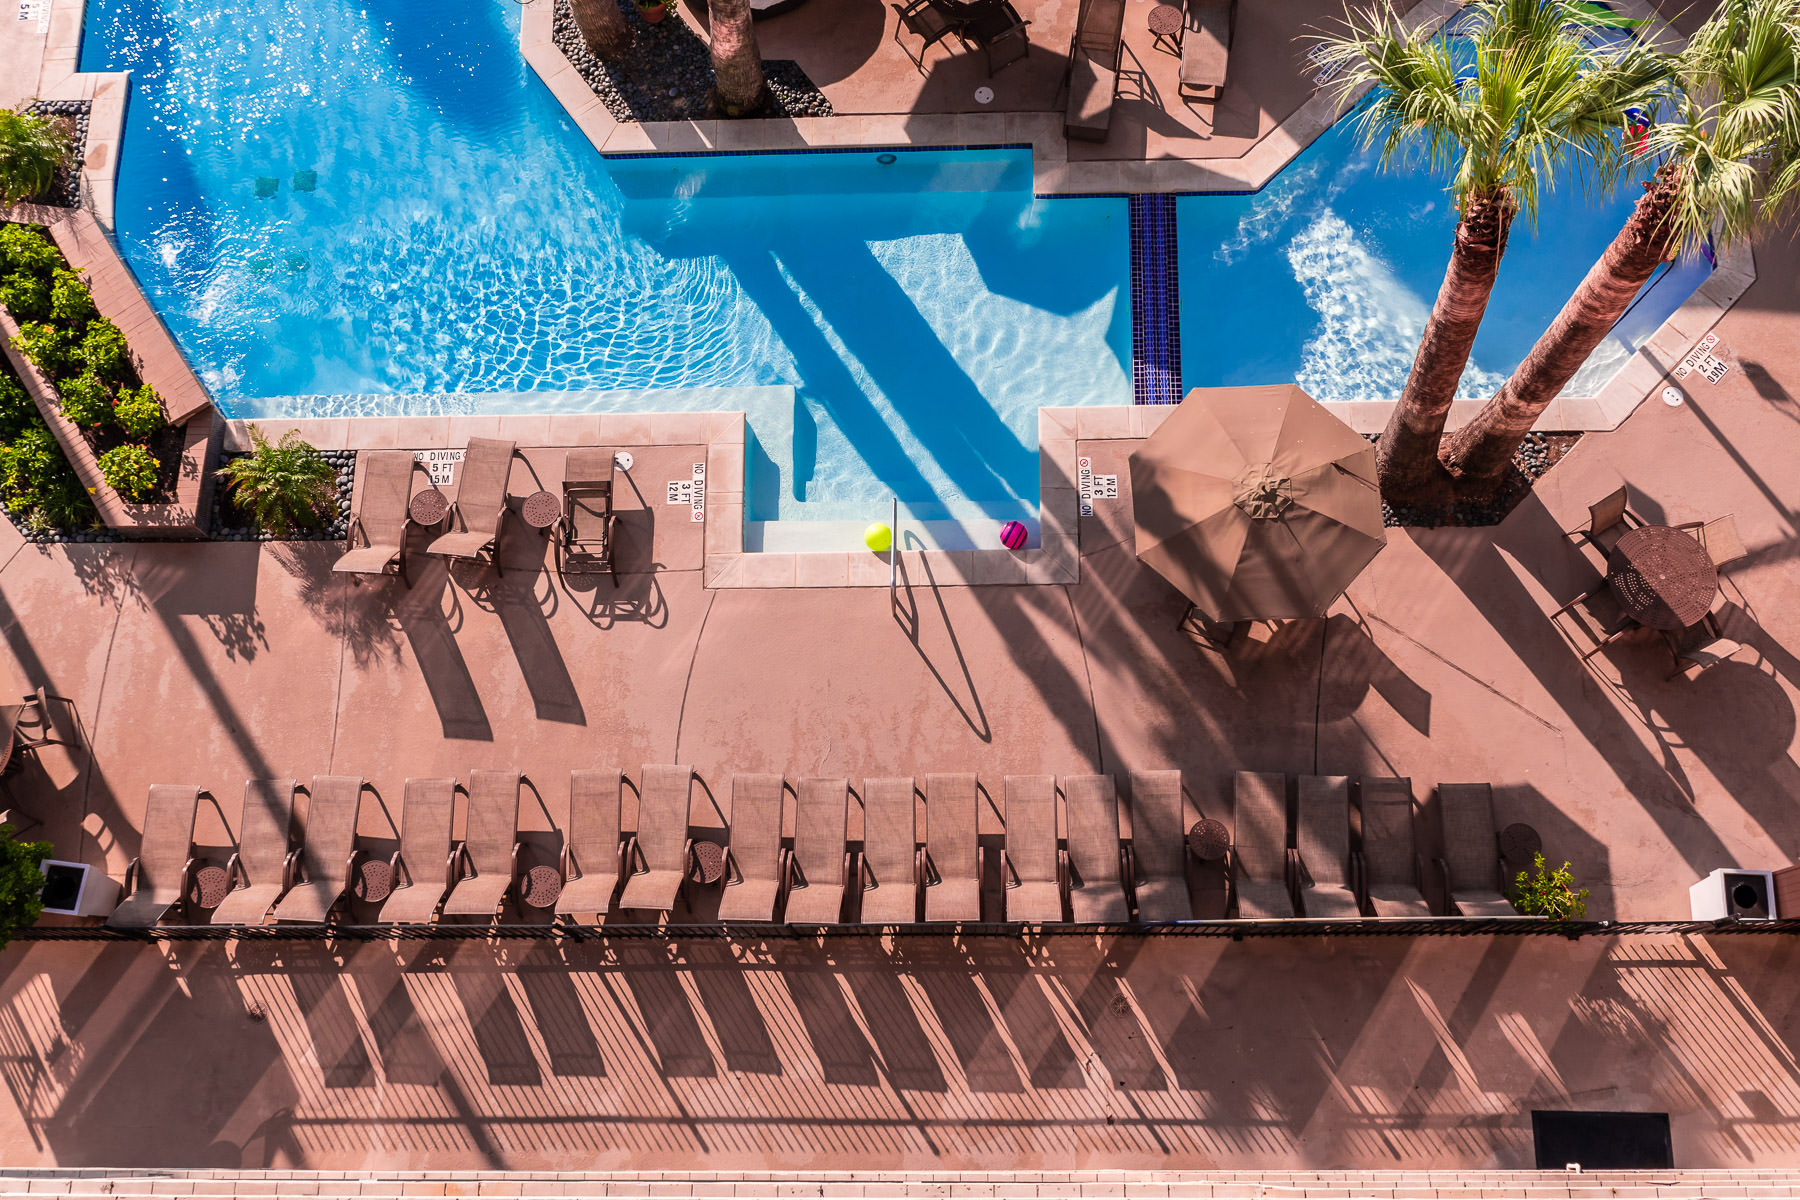 An aerial view of the pool at the Holiday Inn Resort in Galveston, Texas.